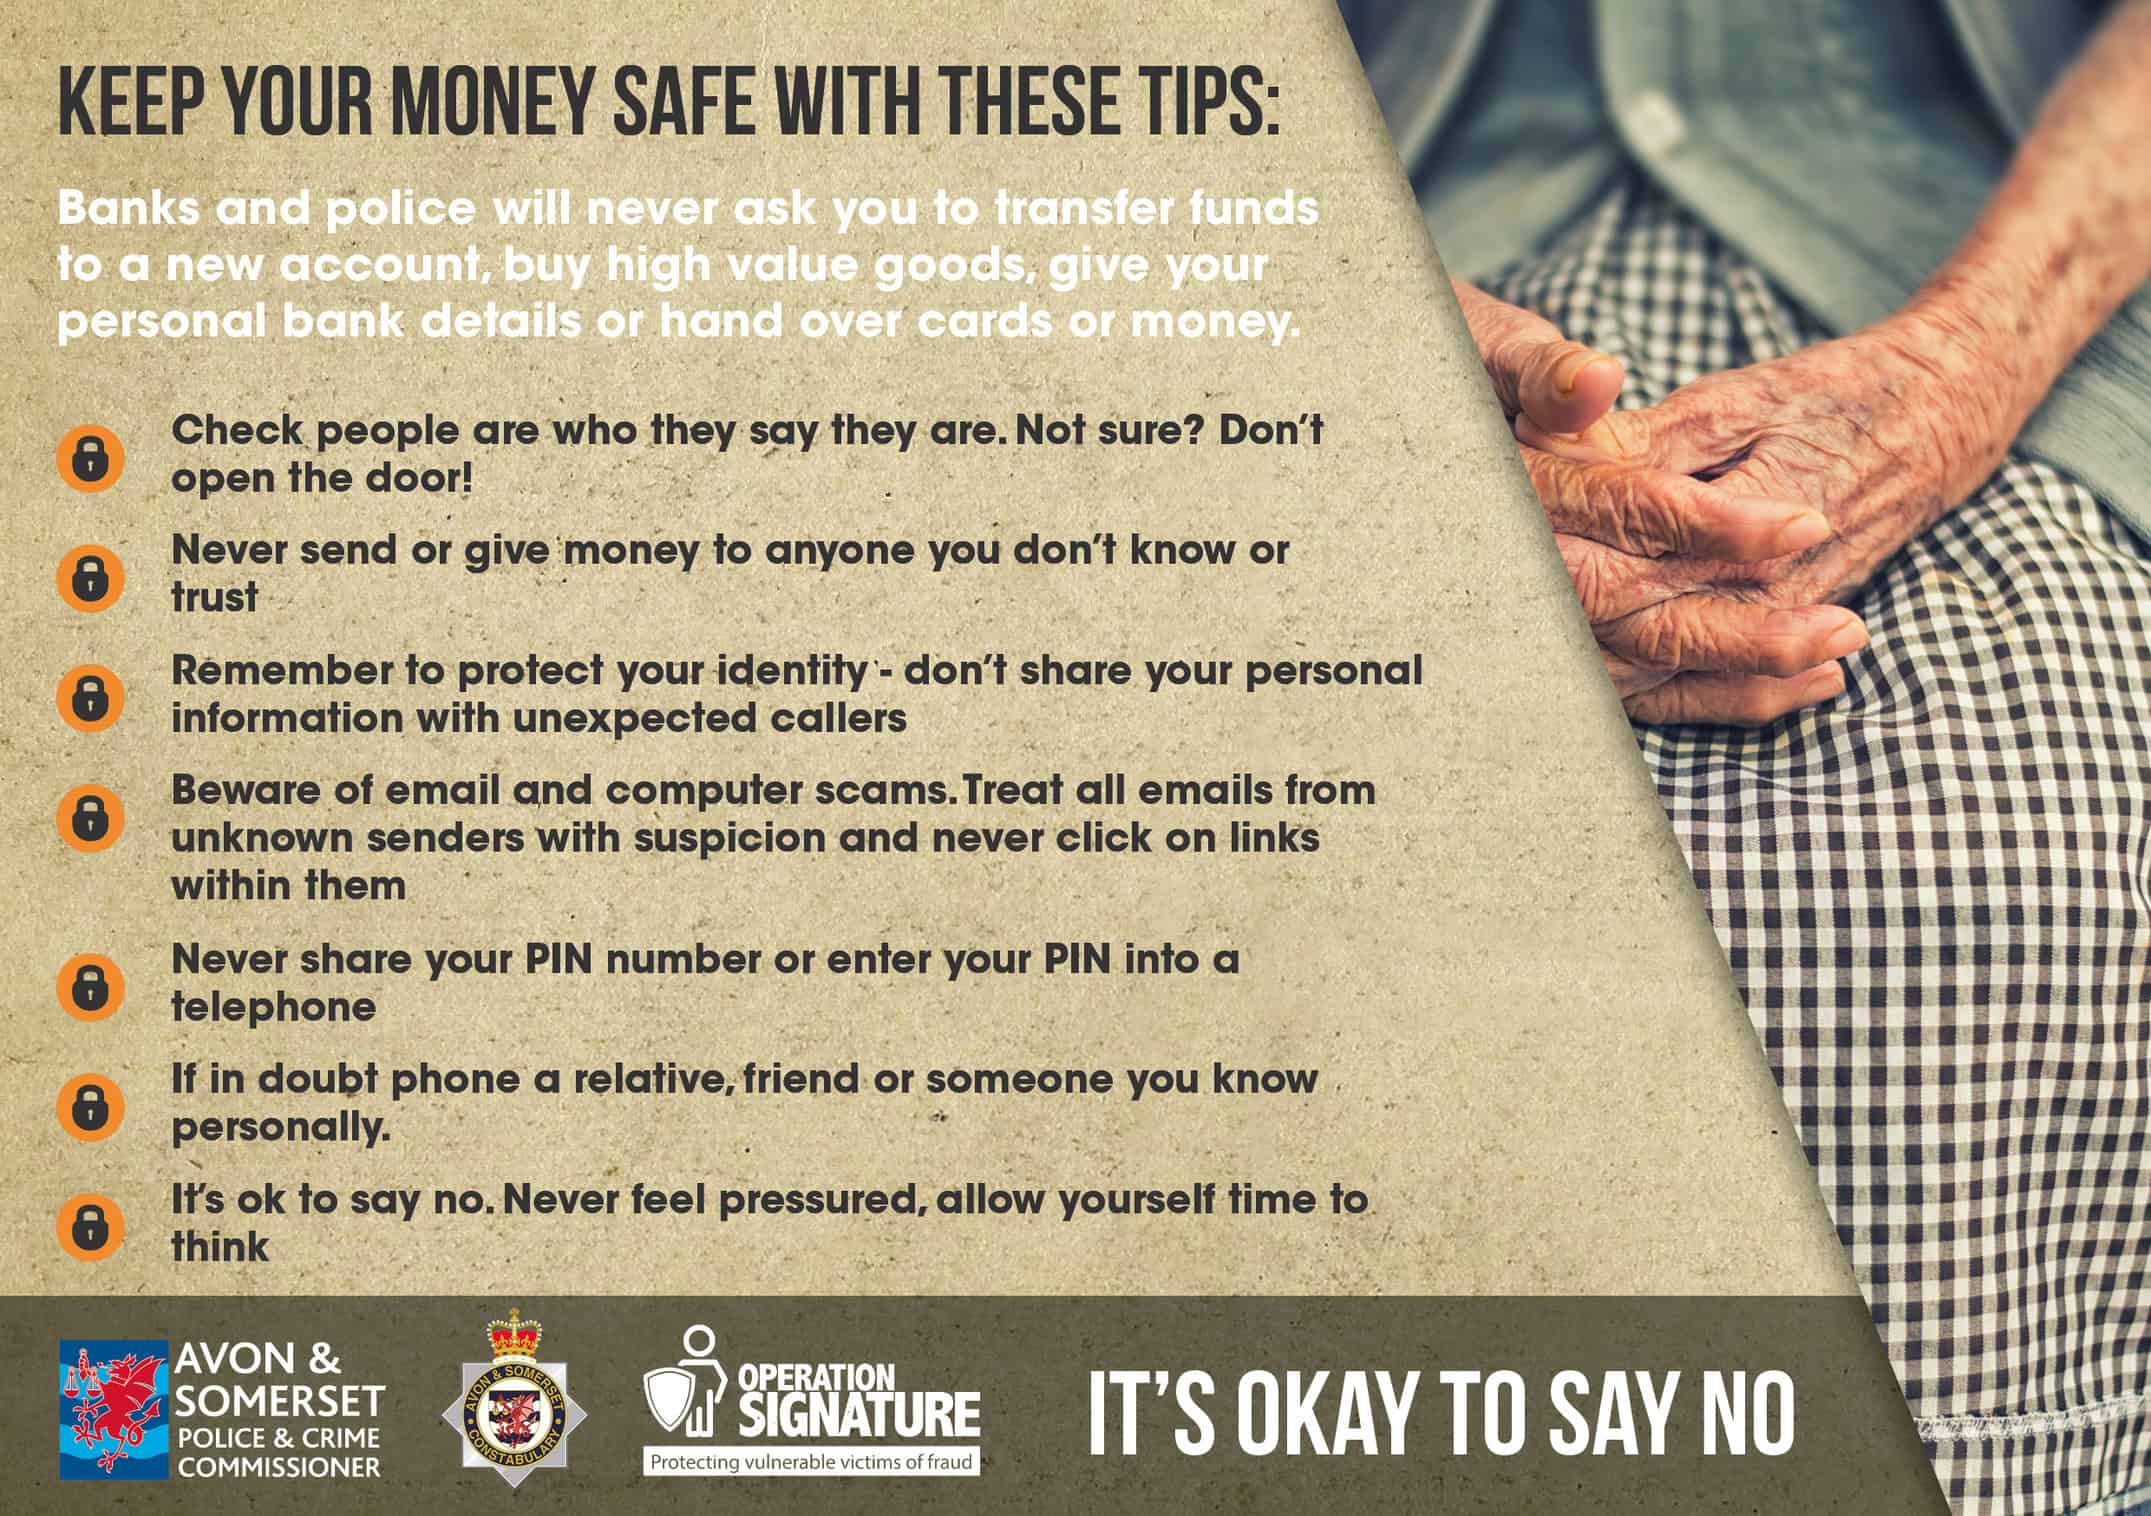 keep your money safe tips